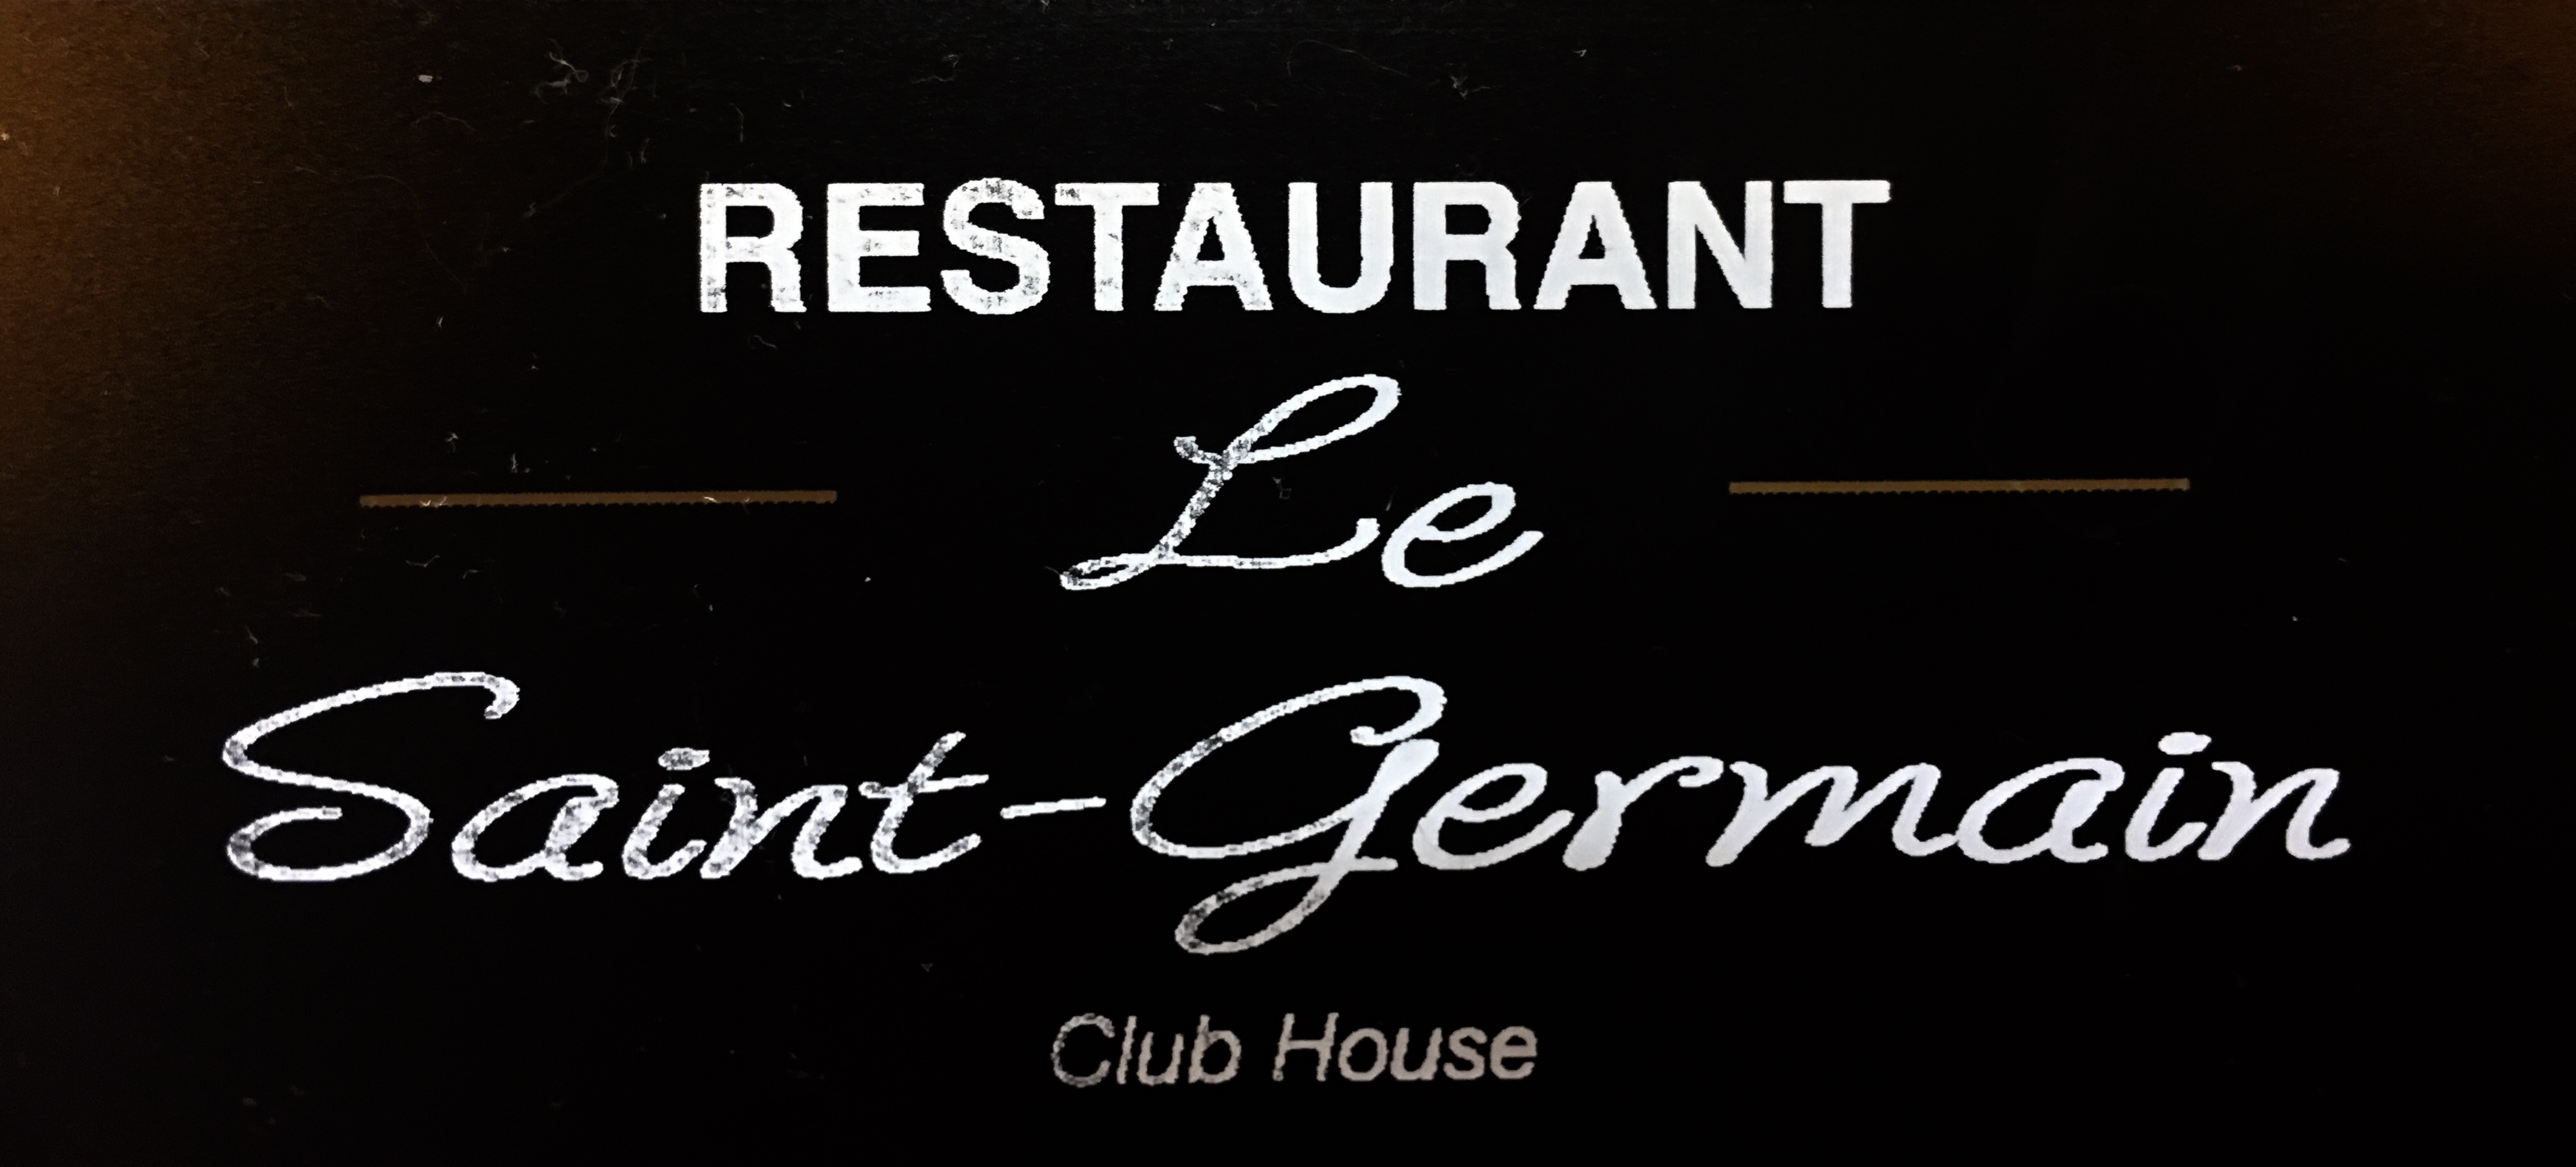 Le Saint Germain club house